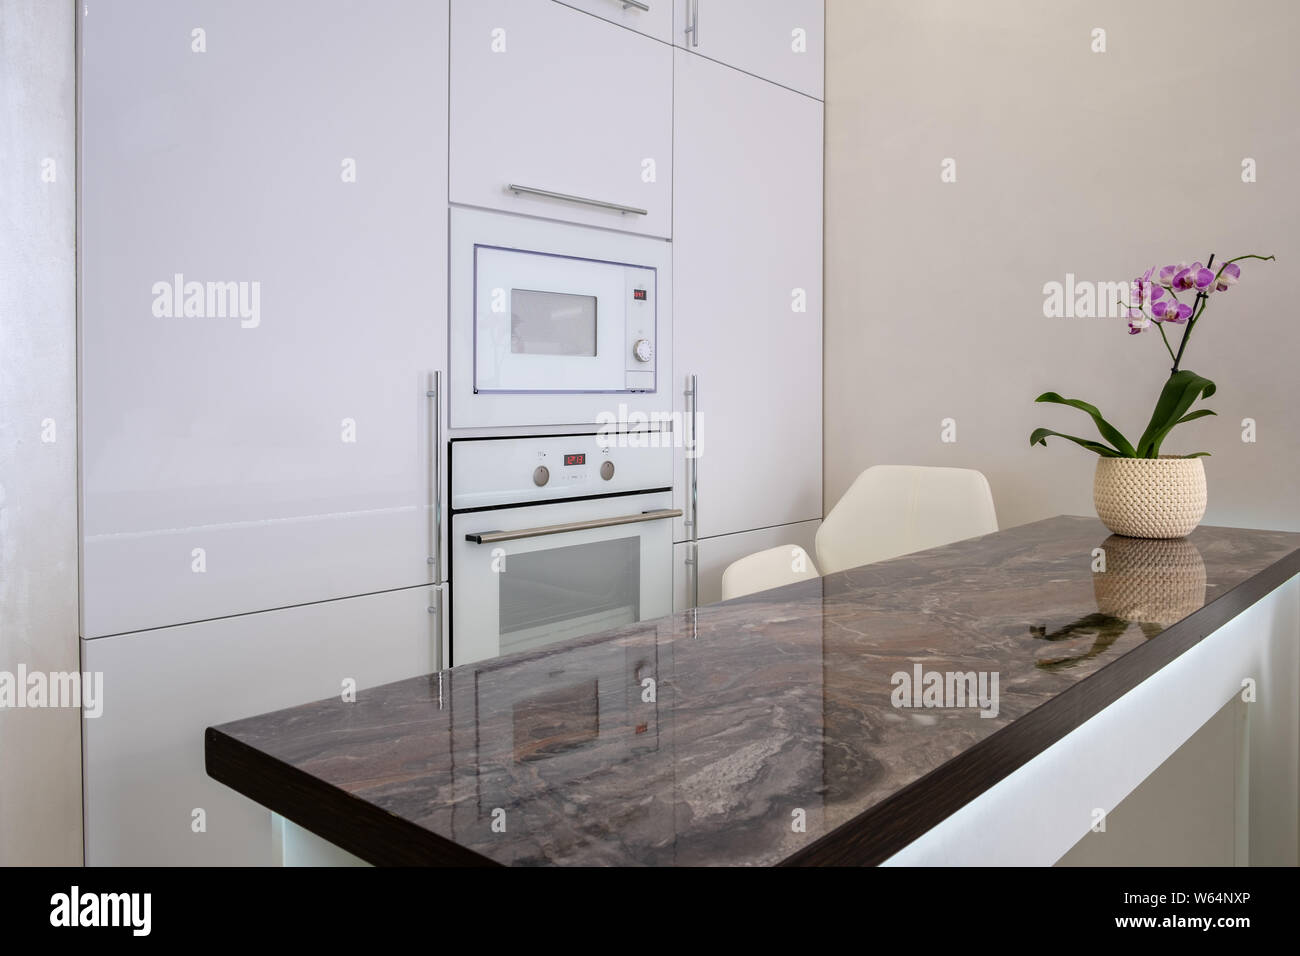 https www alamy com footage of built in modules in kitchen interior shot built in microwave and oven interior of white modern kitchen image261948478 html